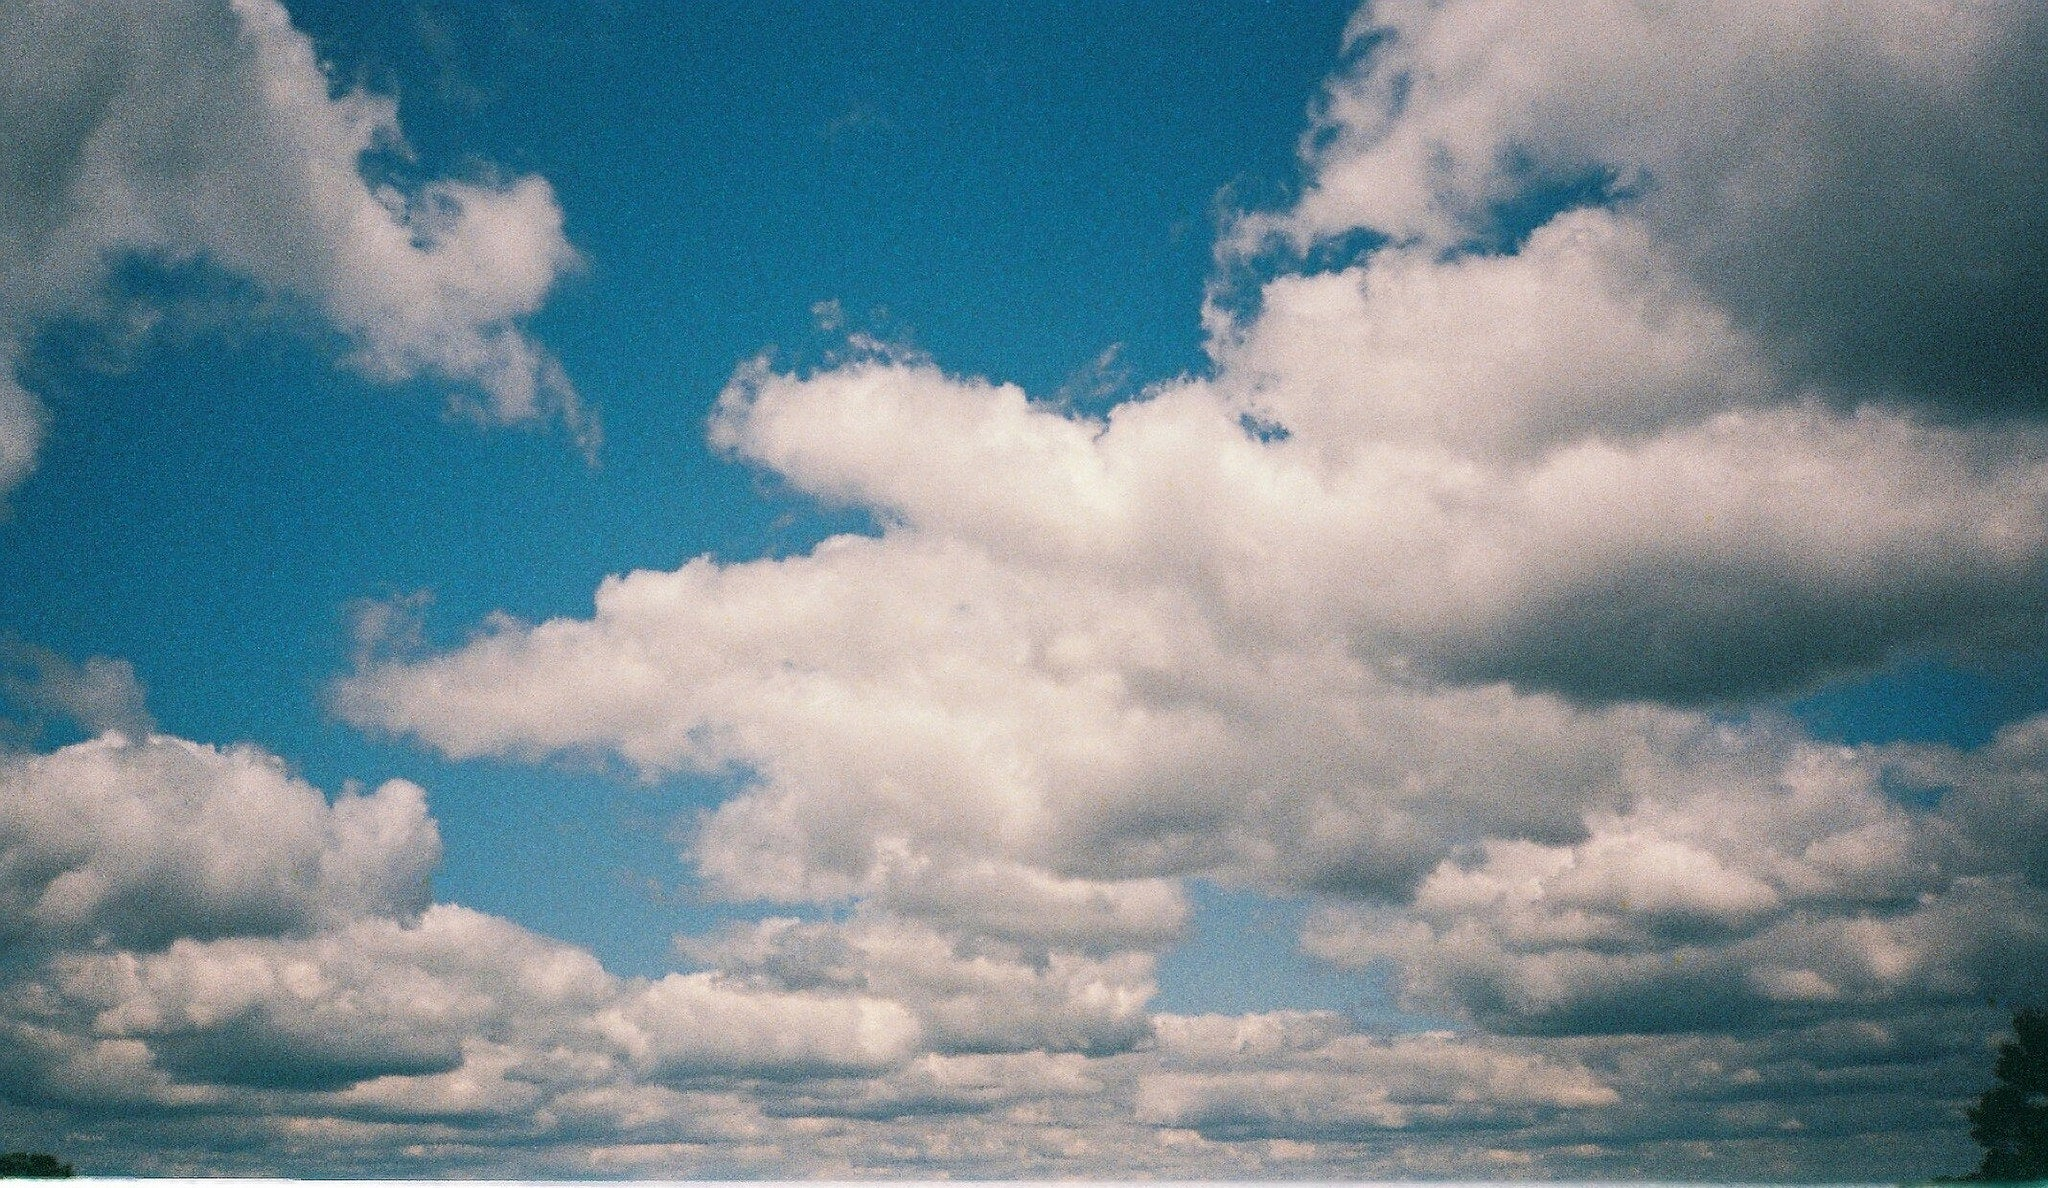 Photo of clouds and sky taken on expired Konica APS colour film